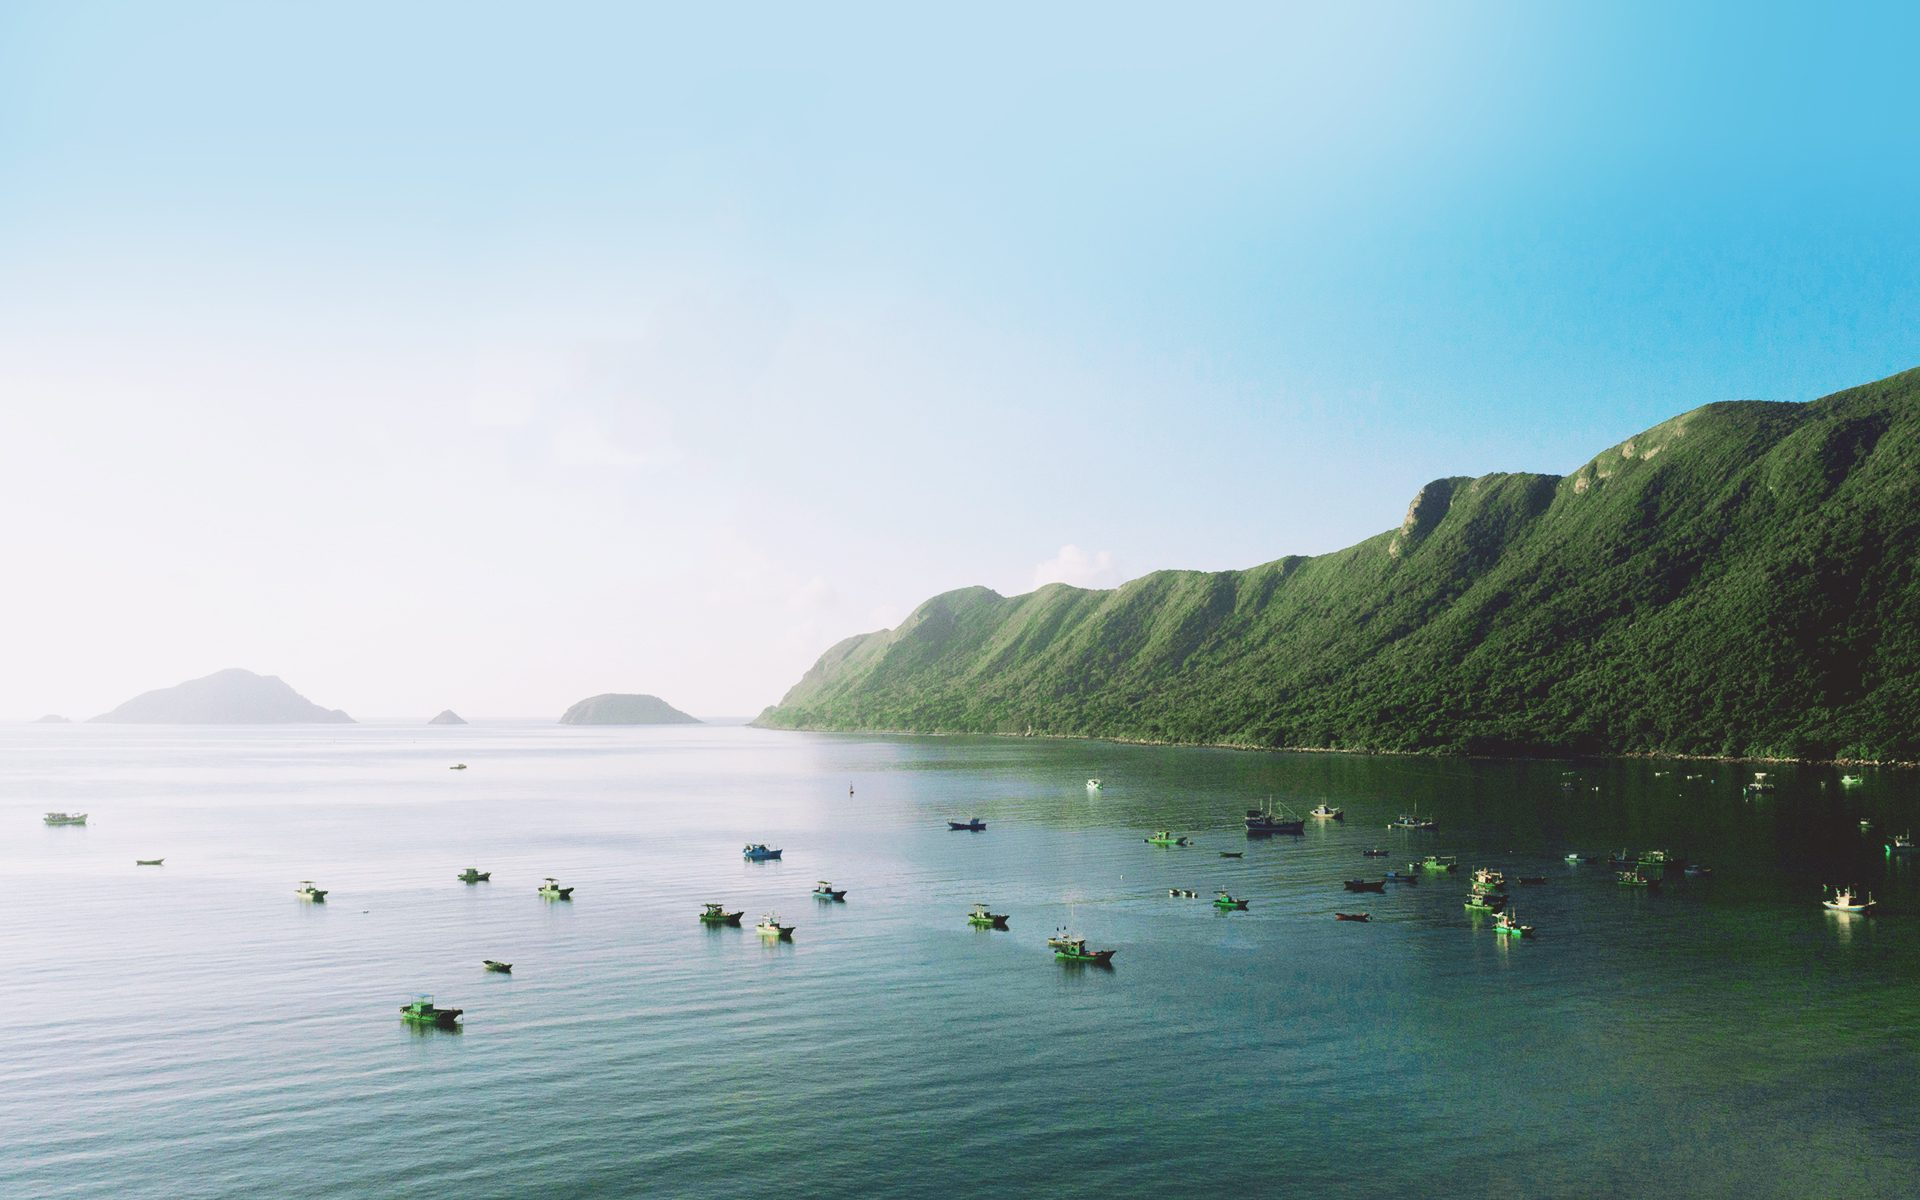 A beautiful archipelago from Ho Chi Minh City just a few hours away